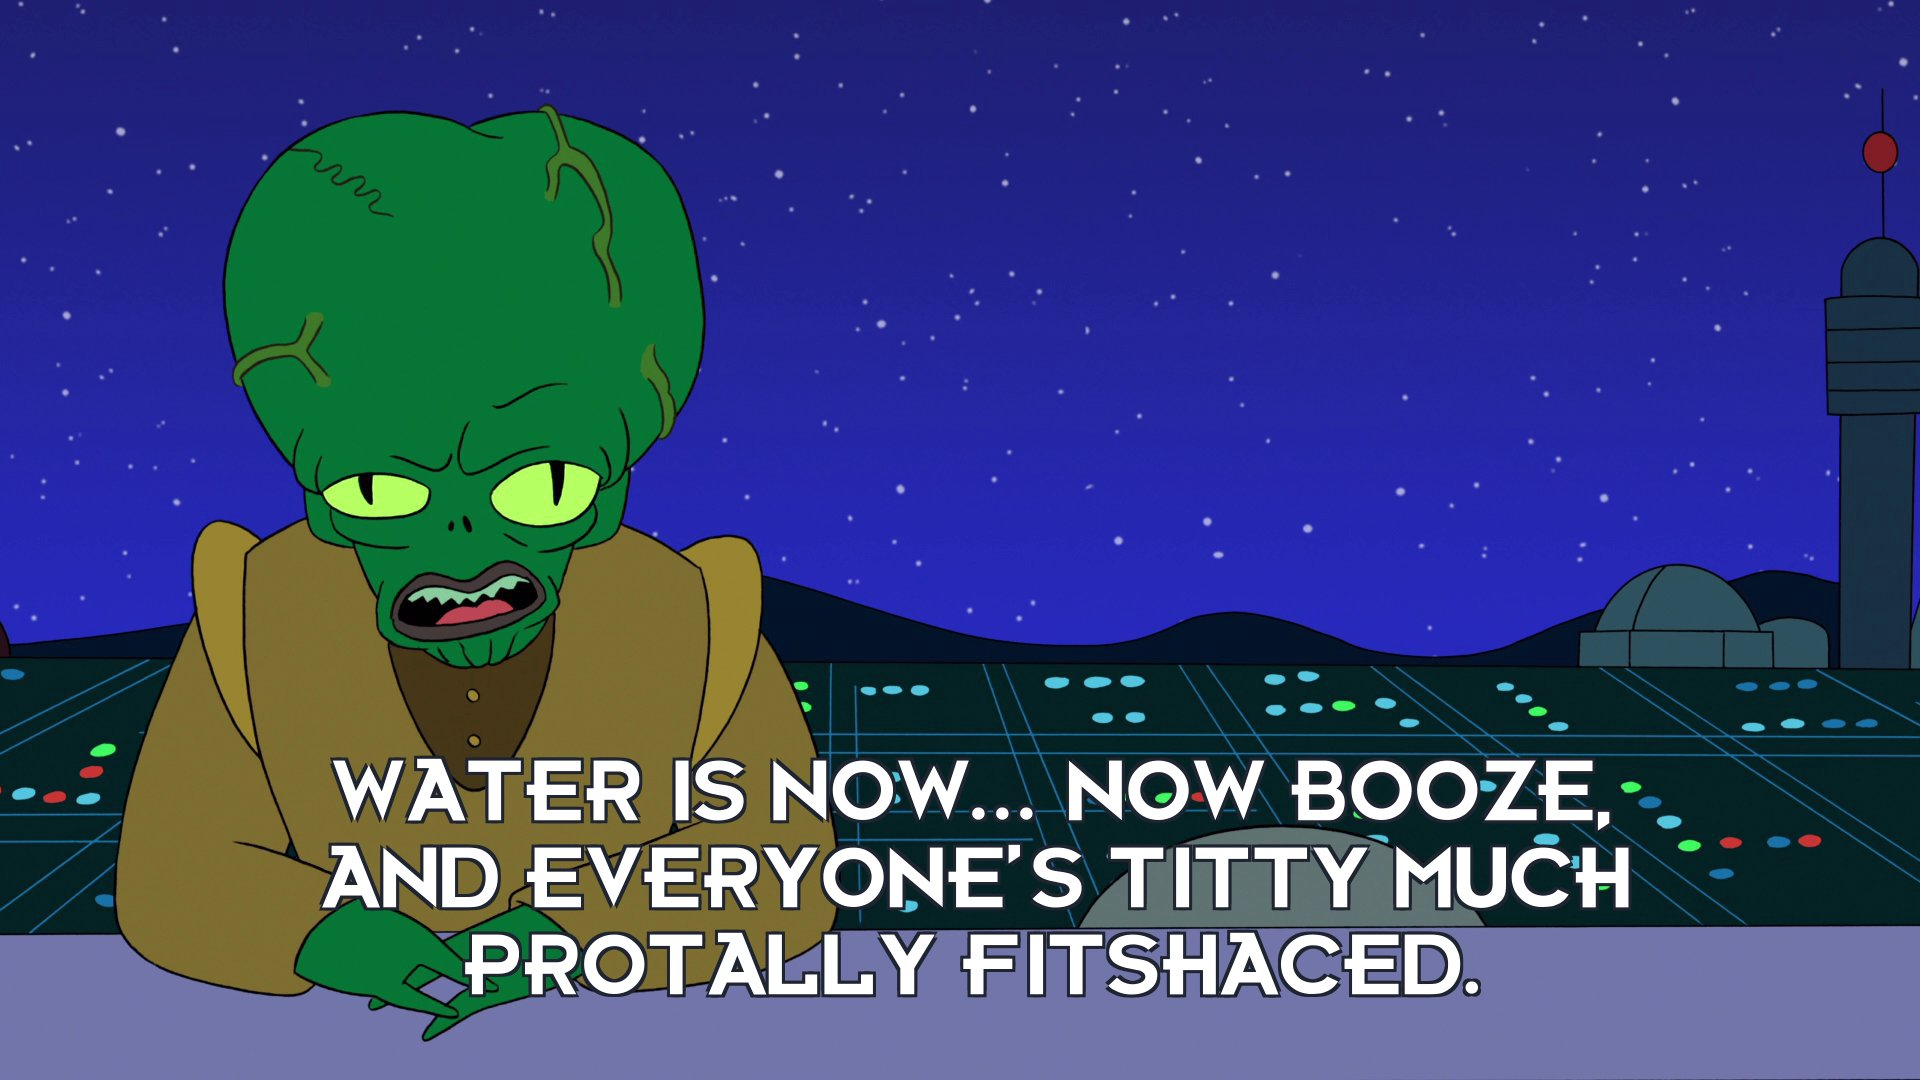 Morbo: Water is now... now booze, and everyone's titty much protally fitshaced.